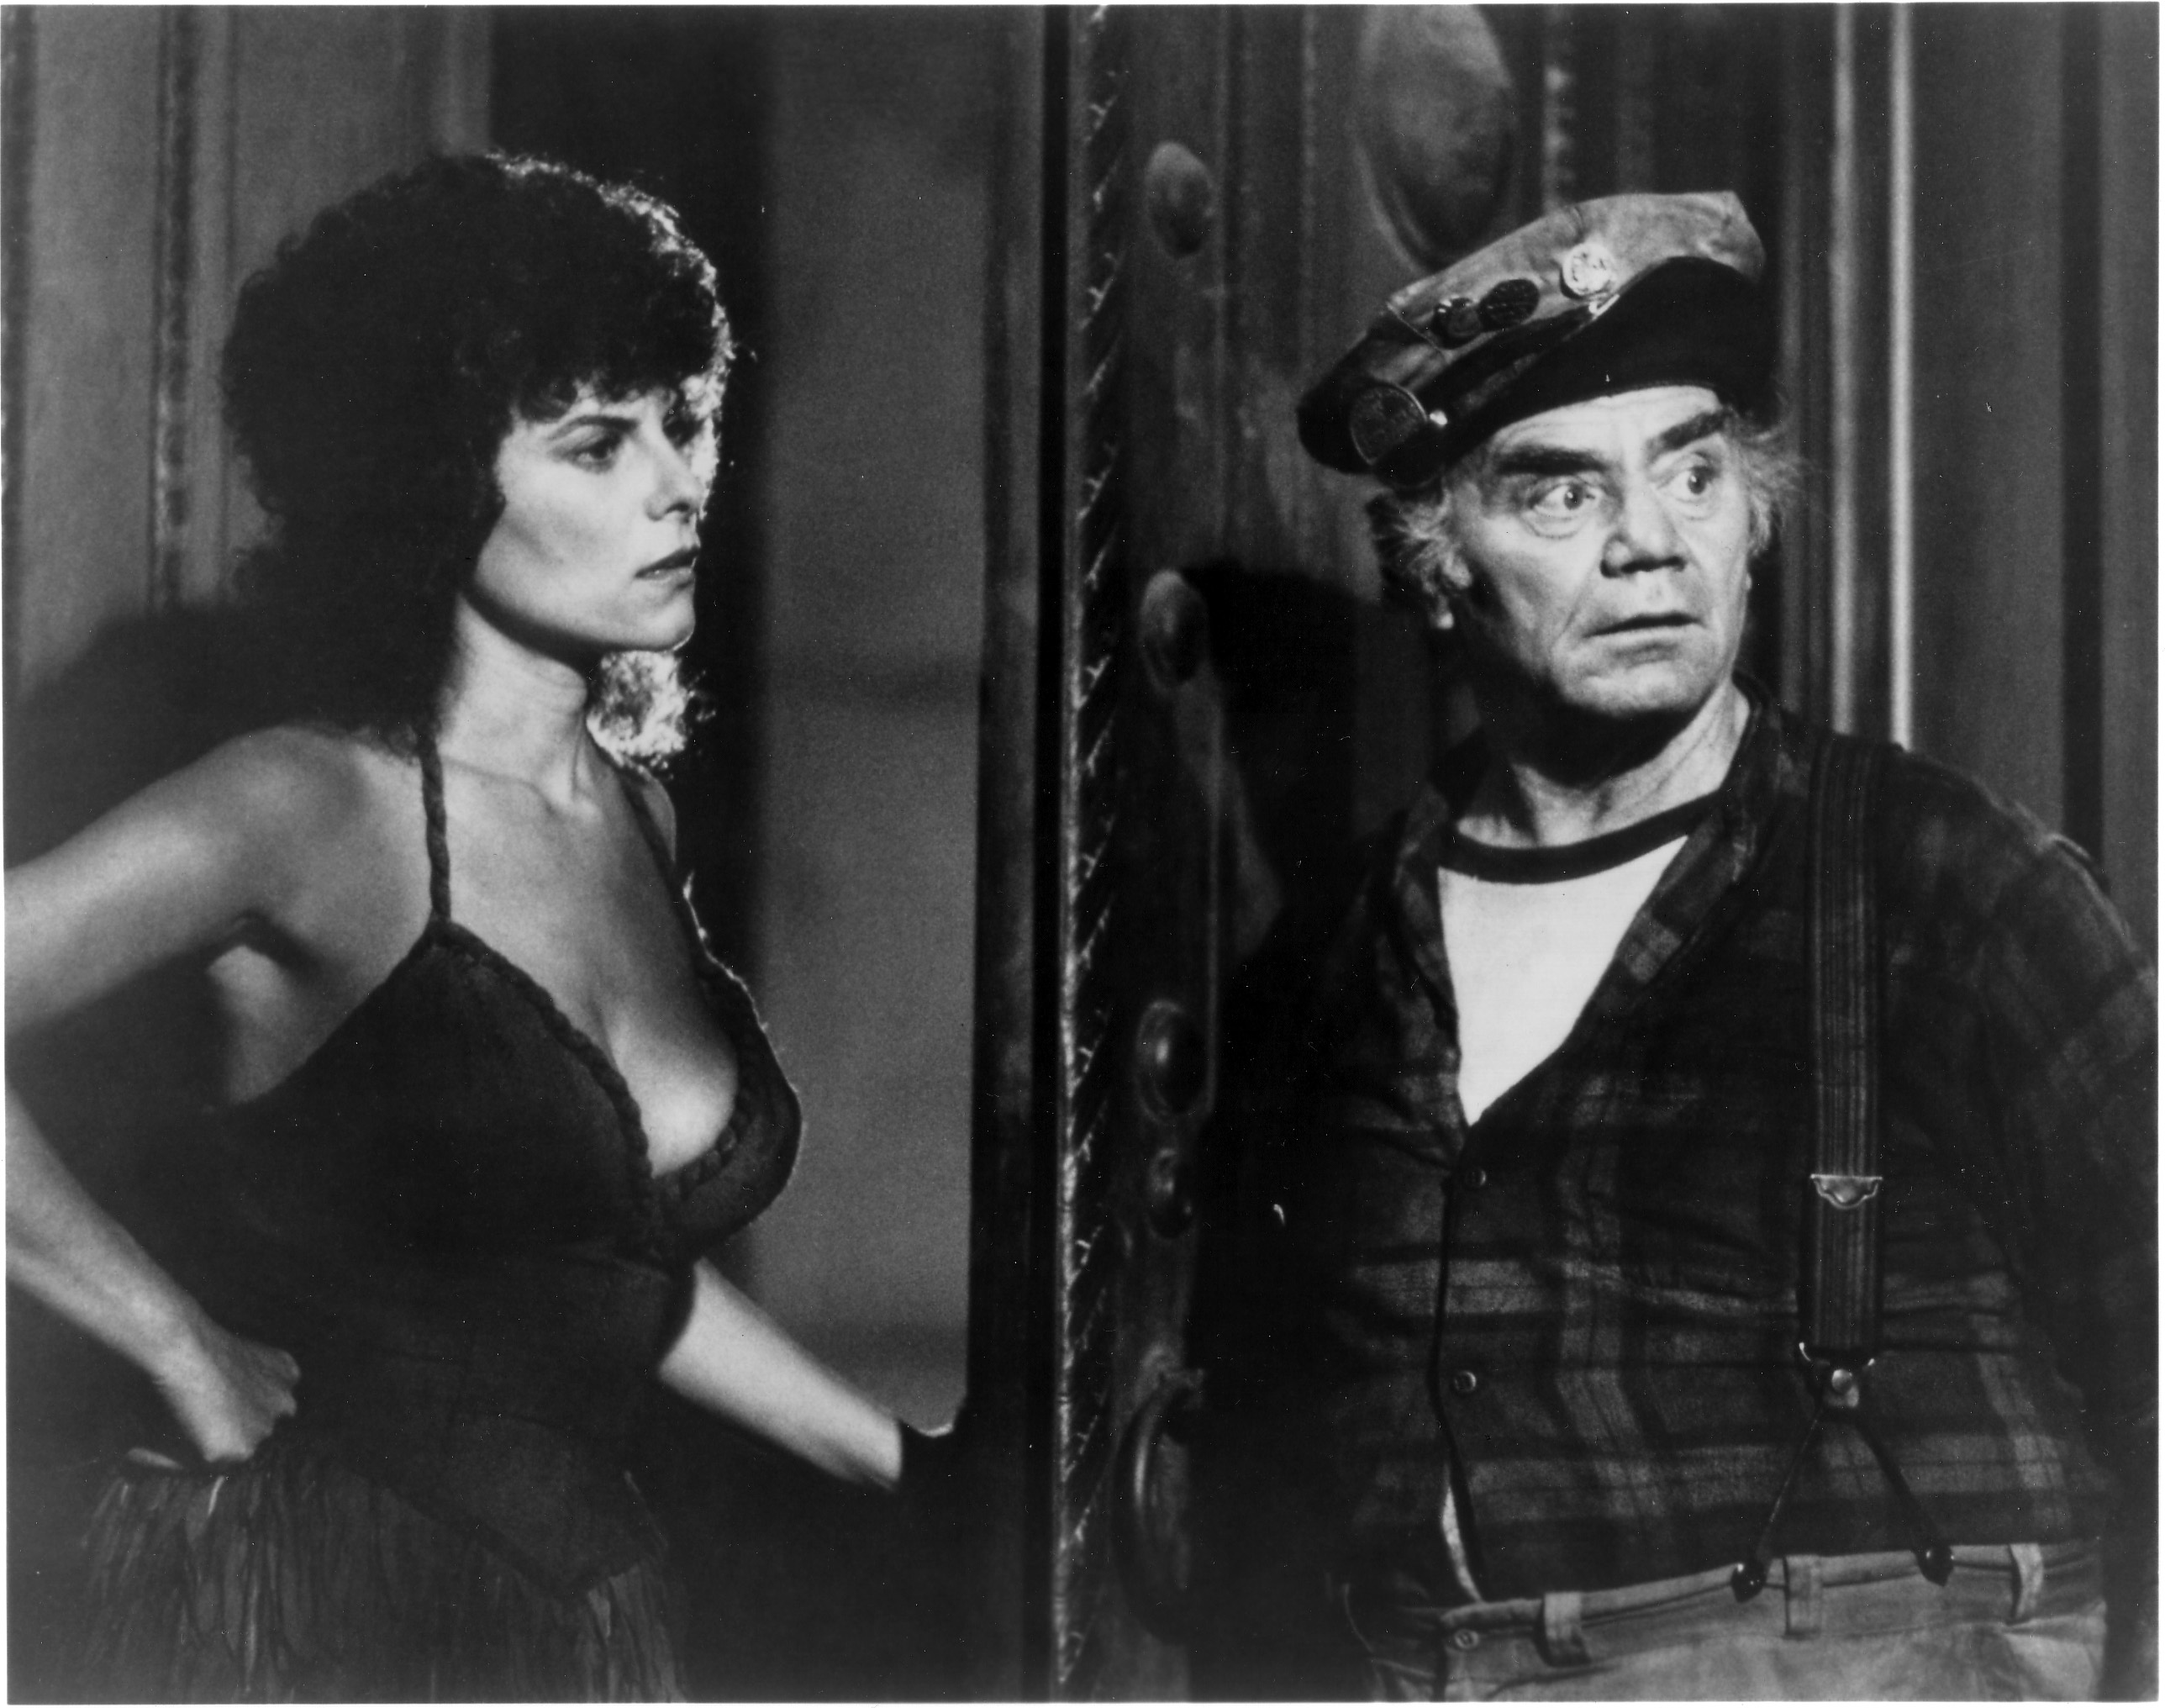 an interview with adrienne barbeau